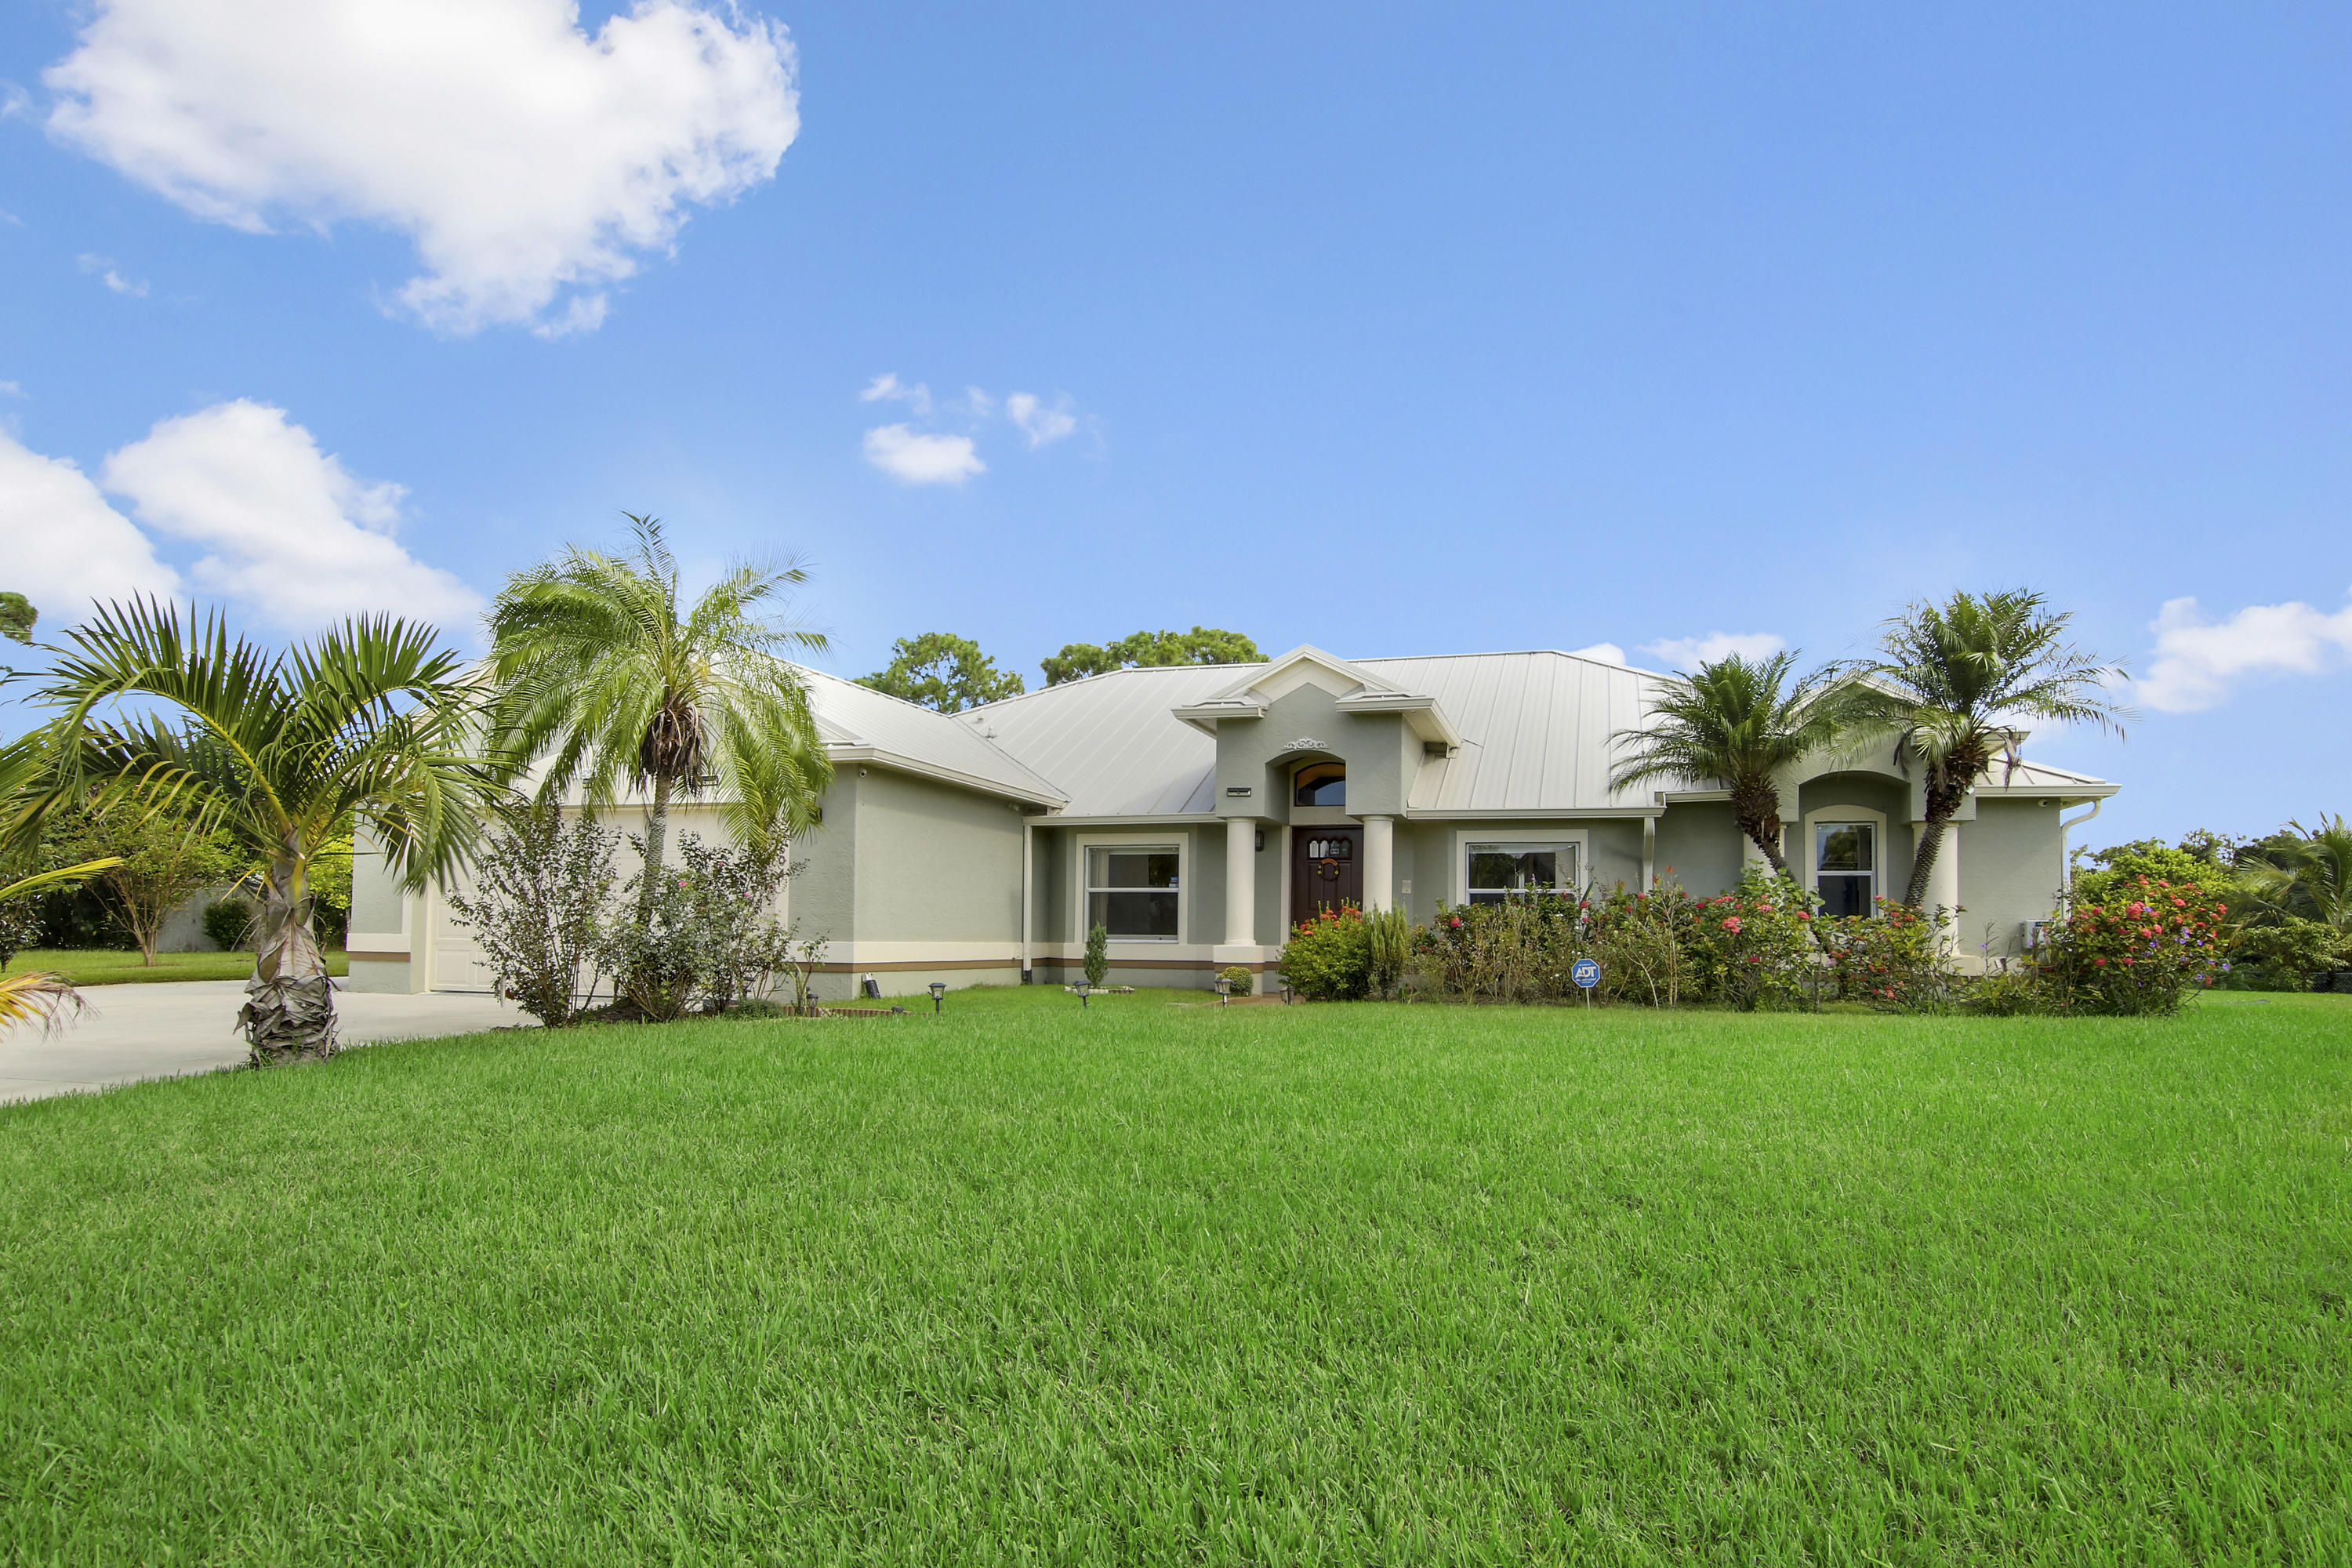 3604 SW Perry Court - 34953 - FL - Port Saint Lucie